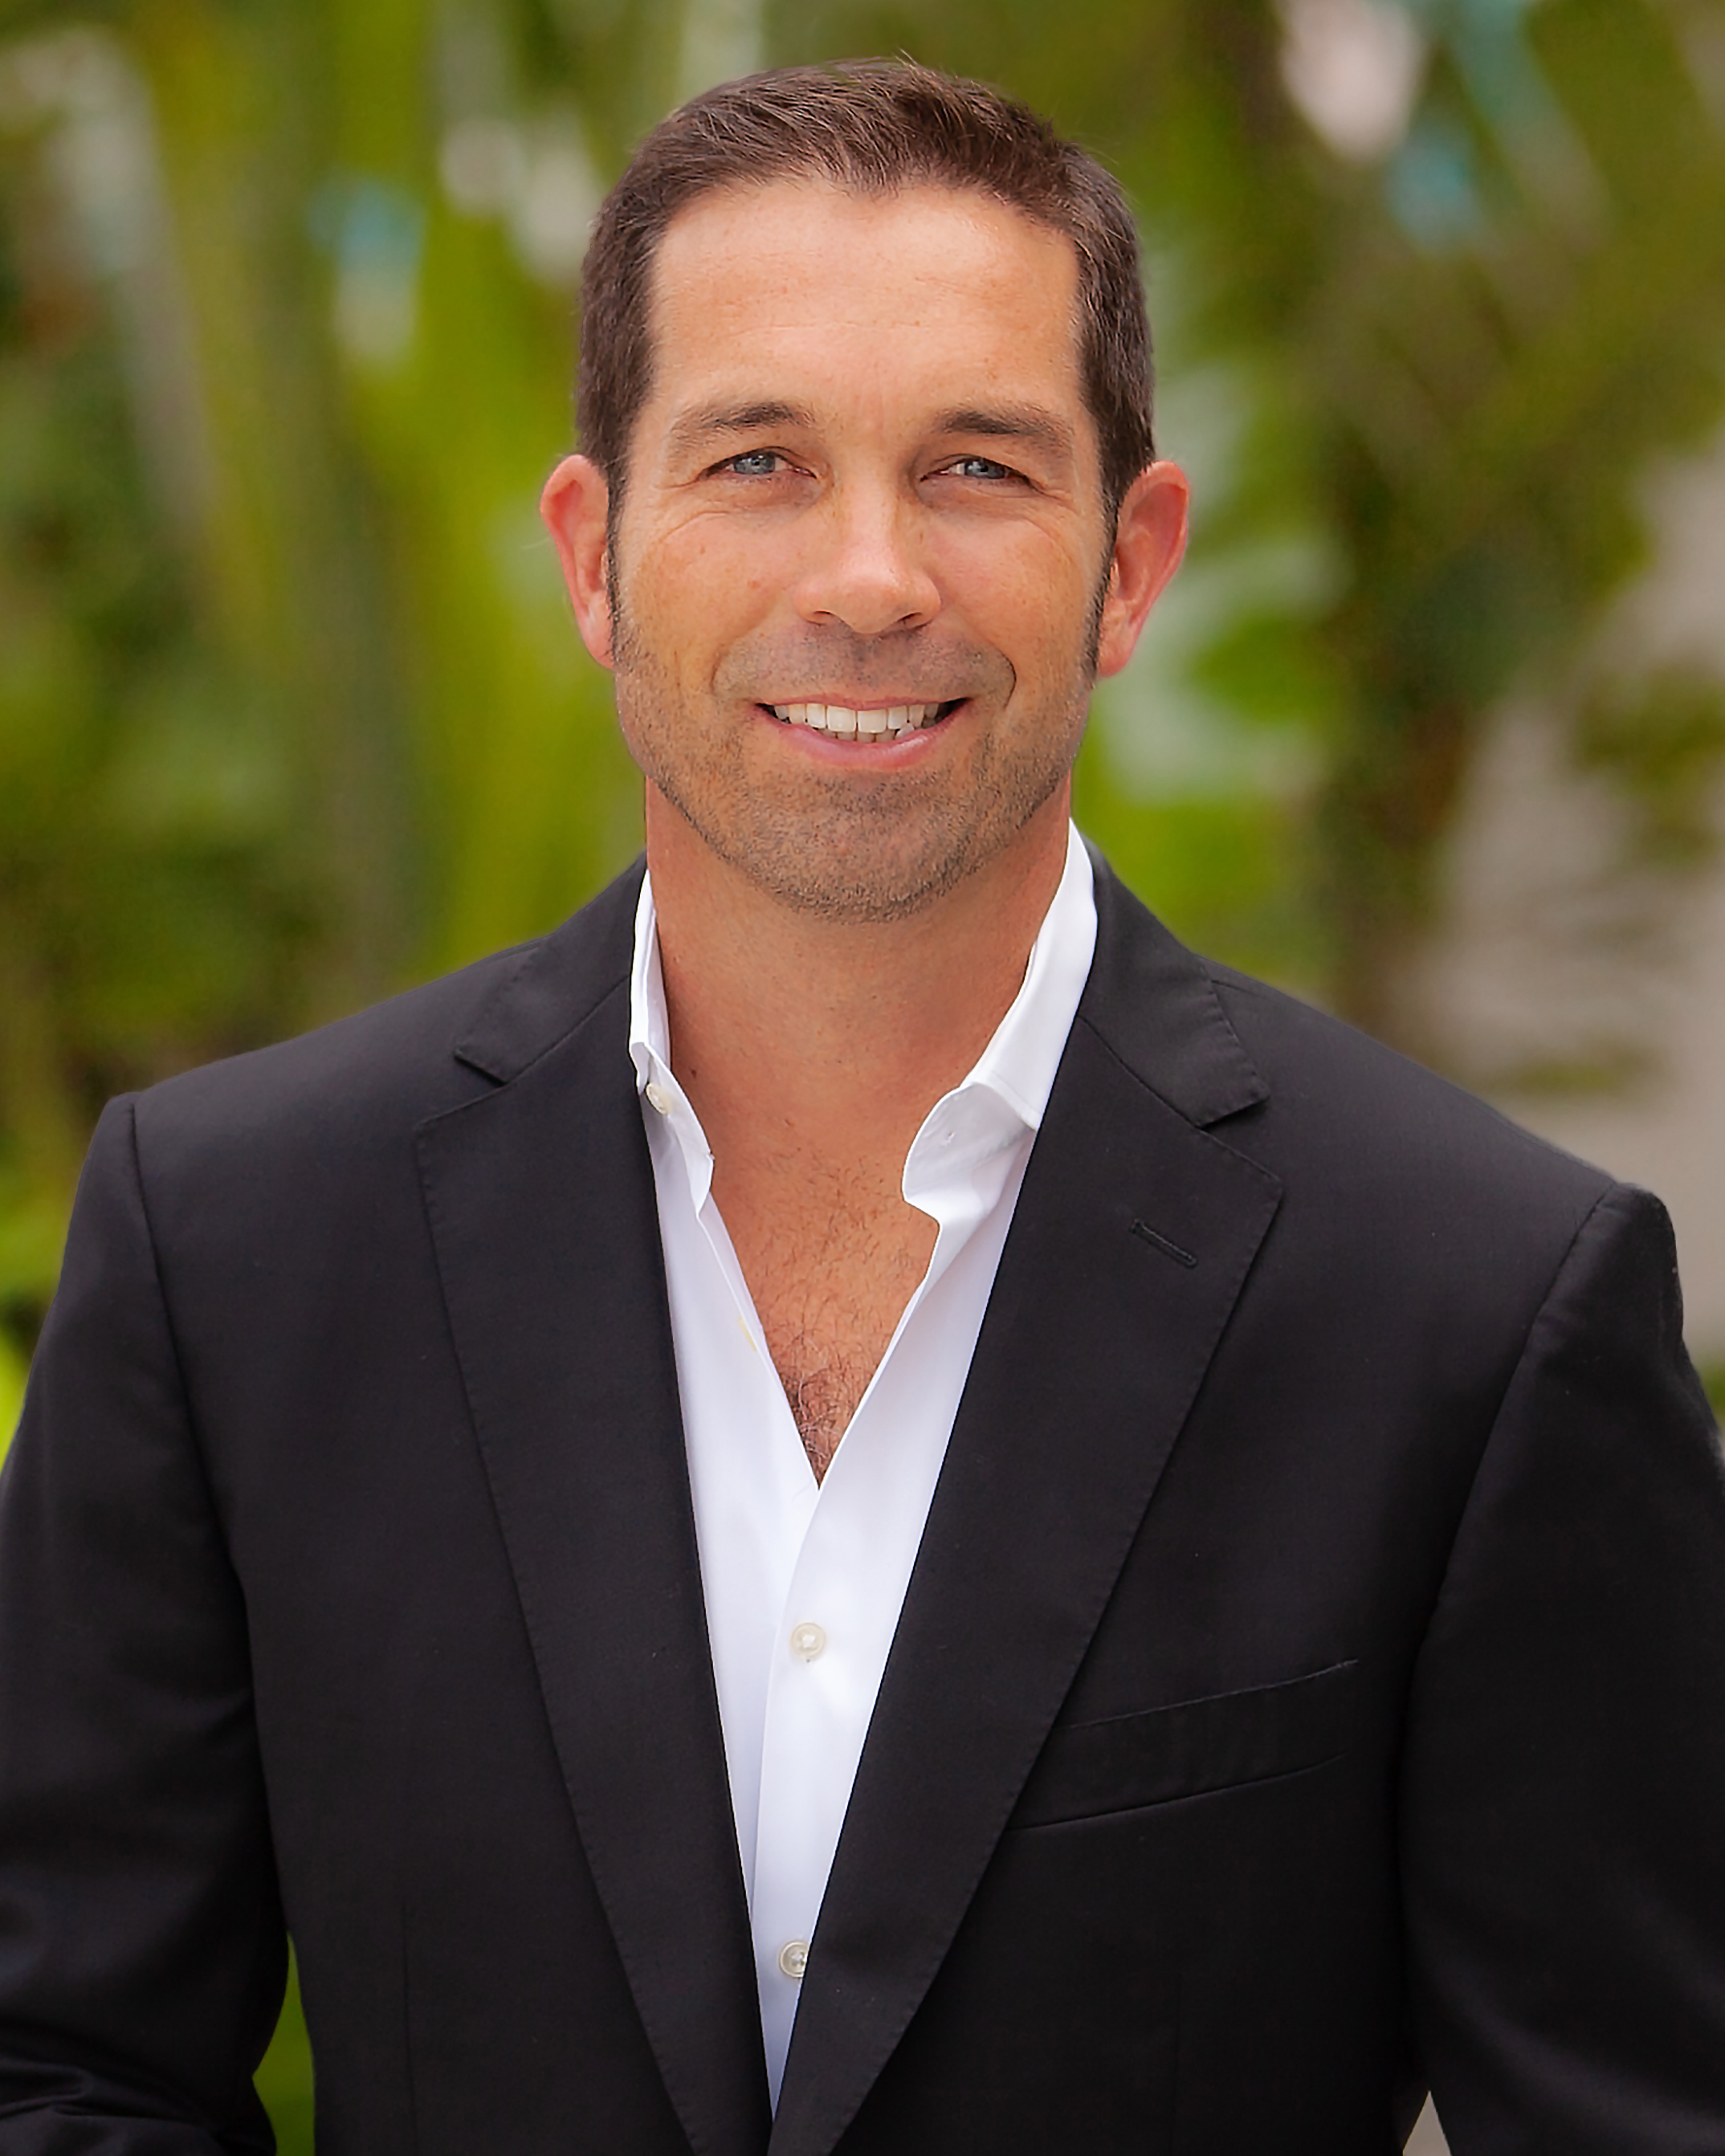 Julian Johnston, a top realtor in South Florida for Corcoran, a real estate firm in Miami Beach.